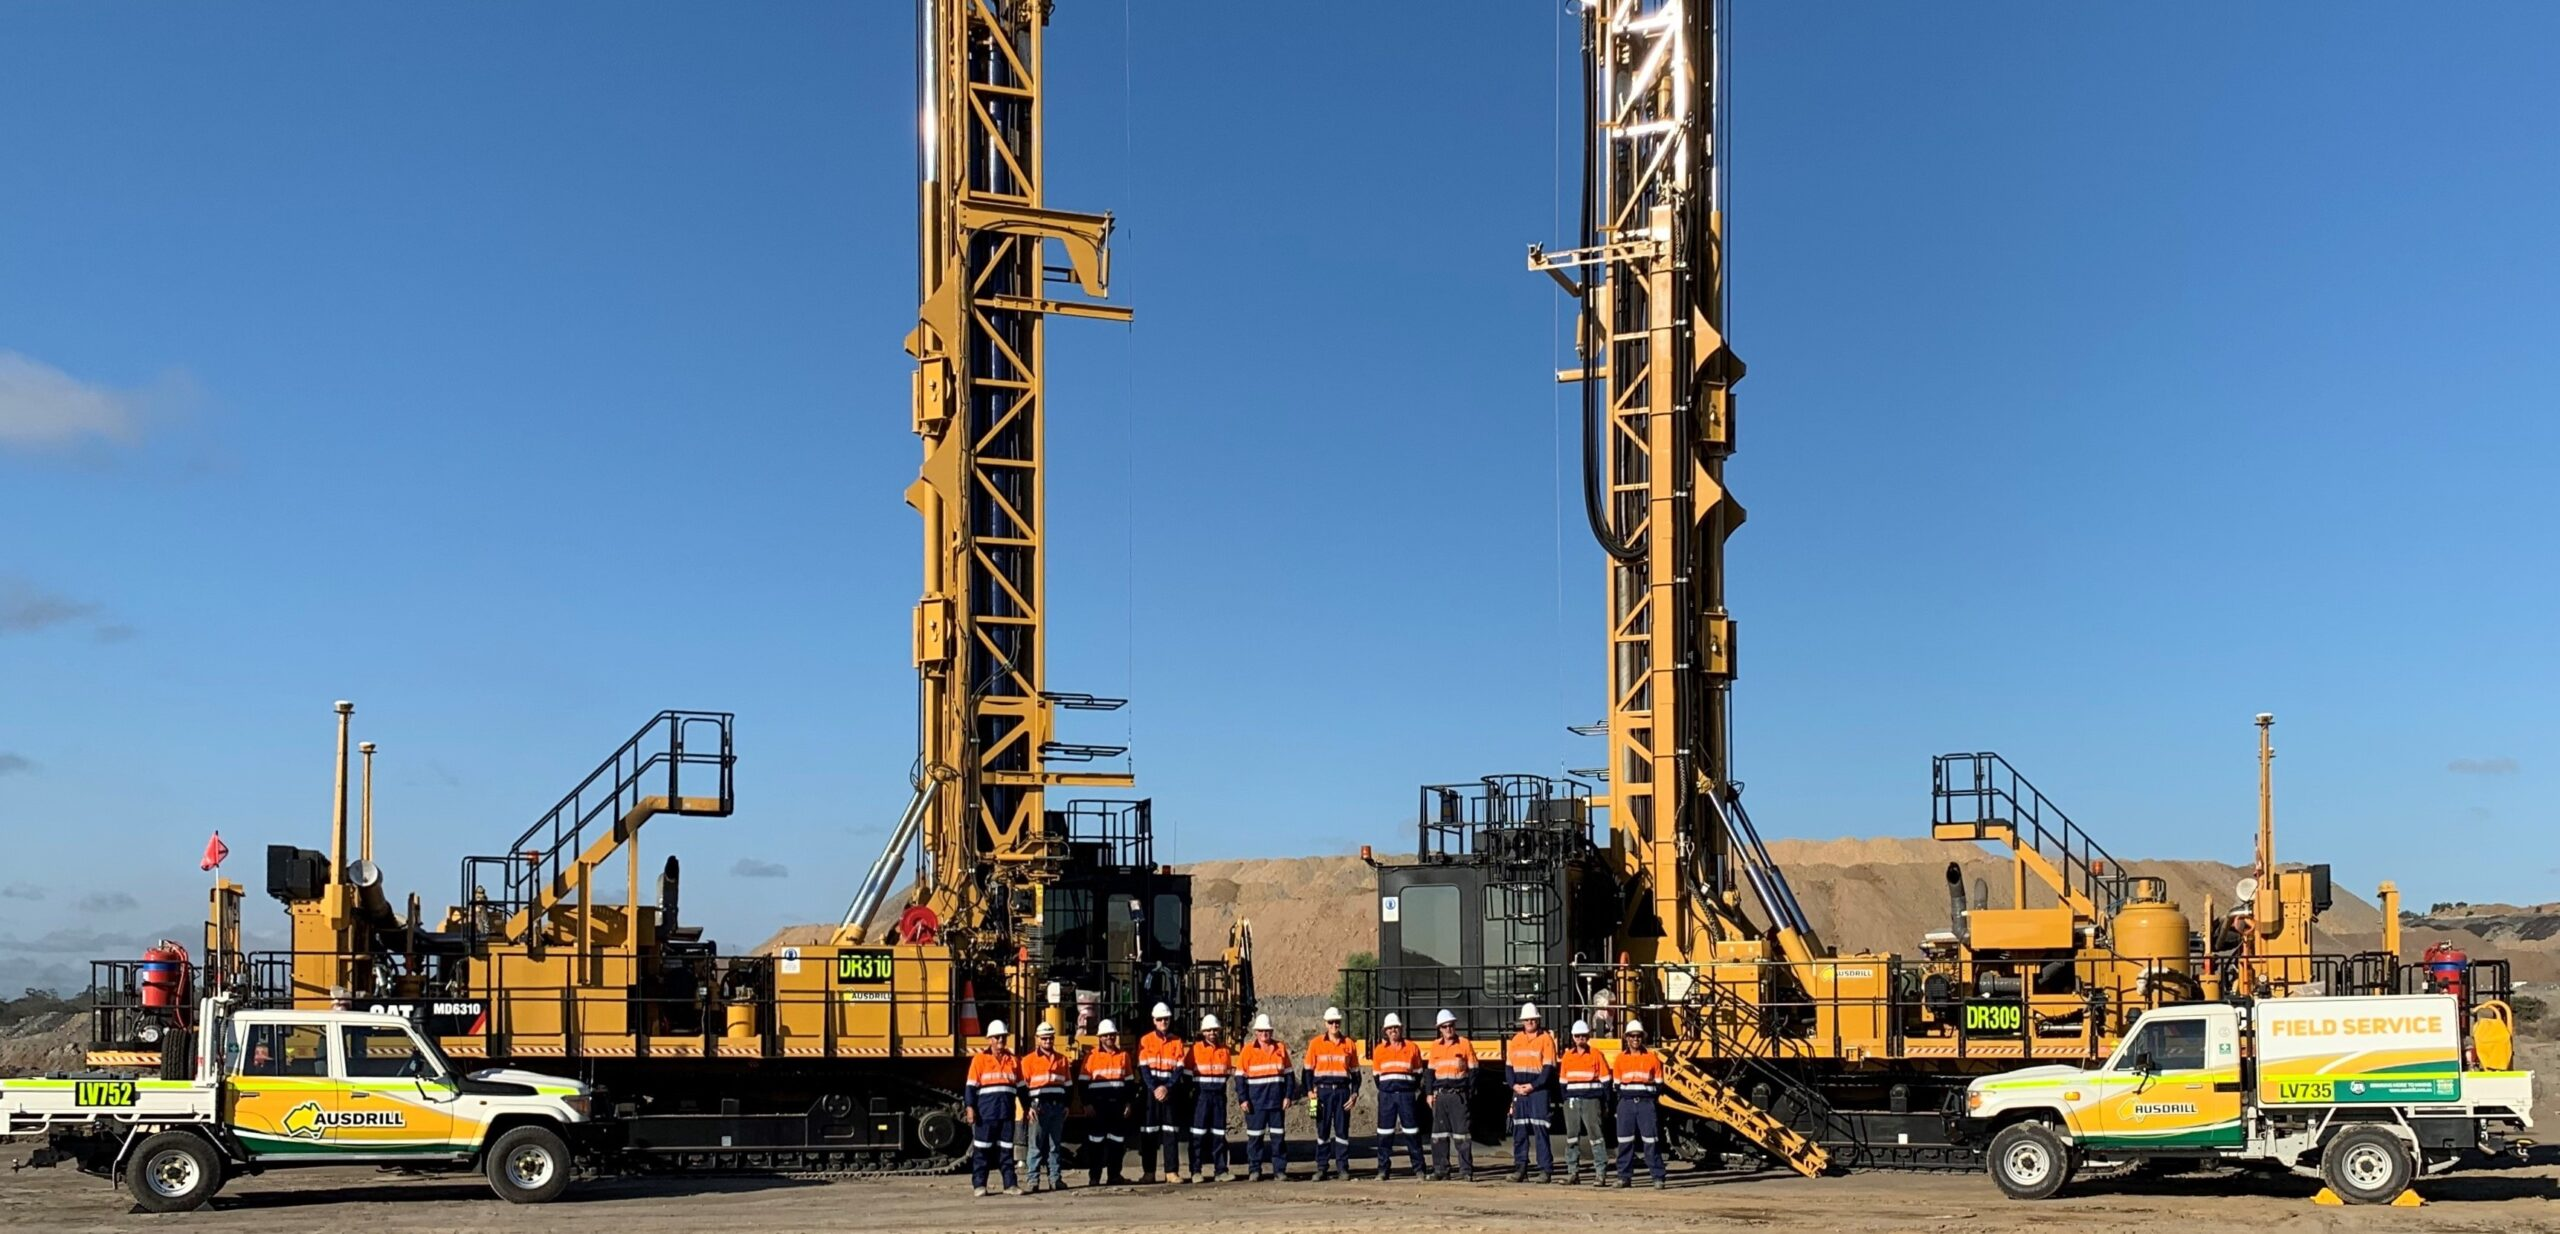 Ausdrill has been awarded $79m in new contracts for a range of exploration and production drill & blast works